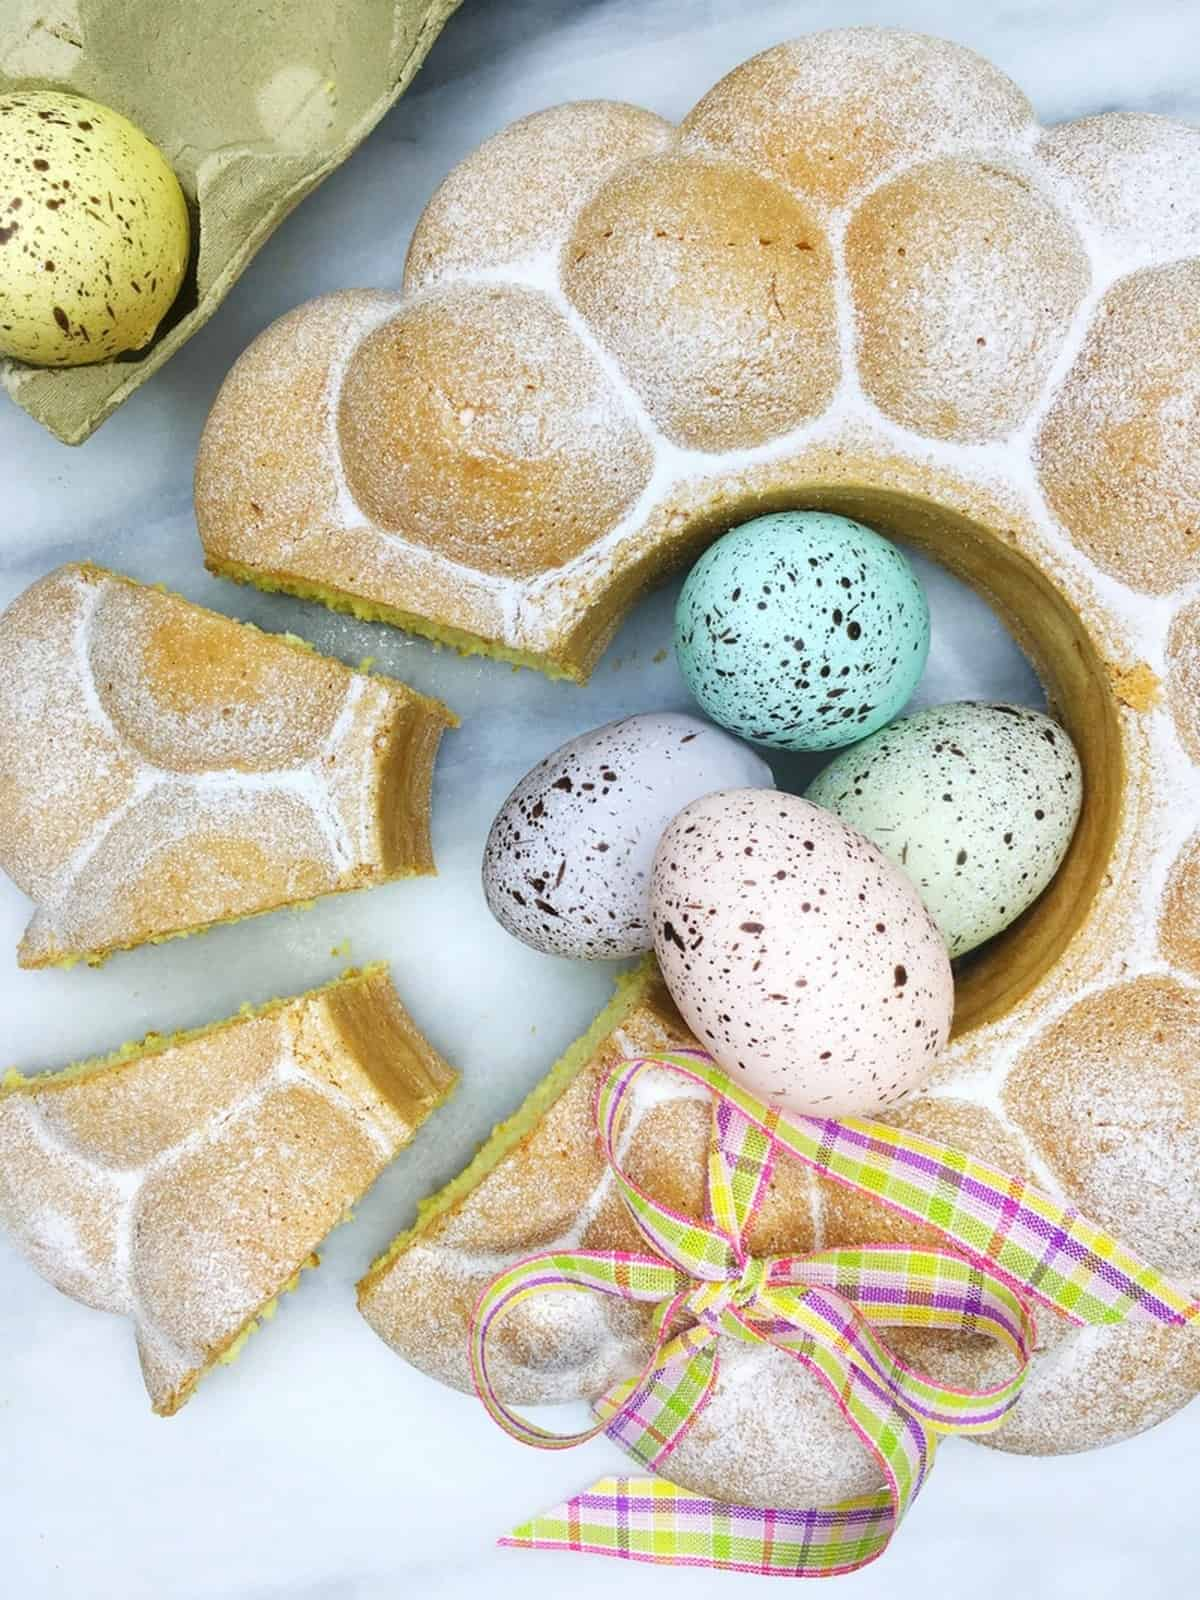 Sliced Savoy cake with decorated Easter eggs: Overhead view